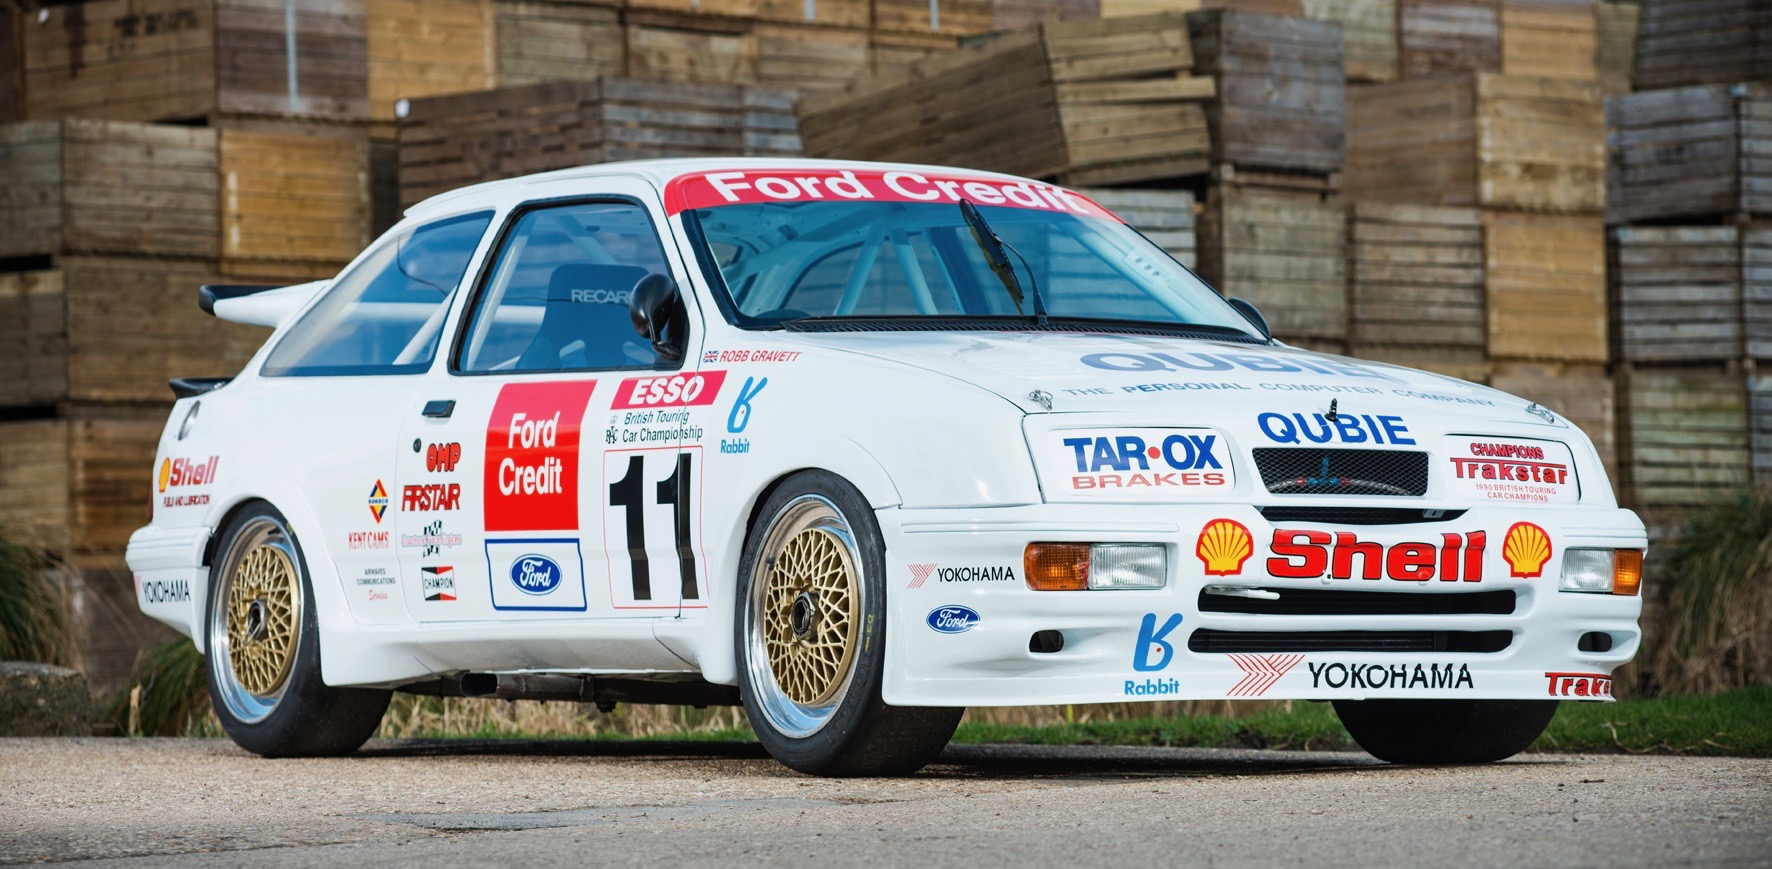 Star power boosts Silverstone Auction sale | ClassicCars.com Journal